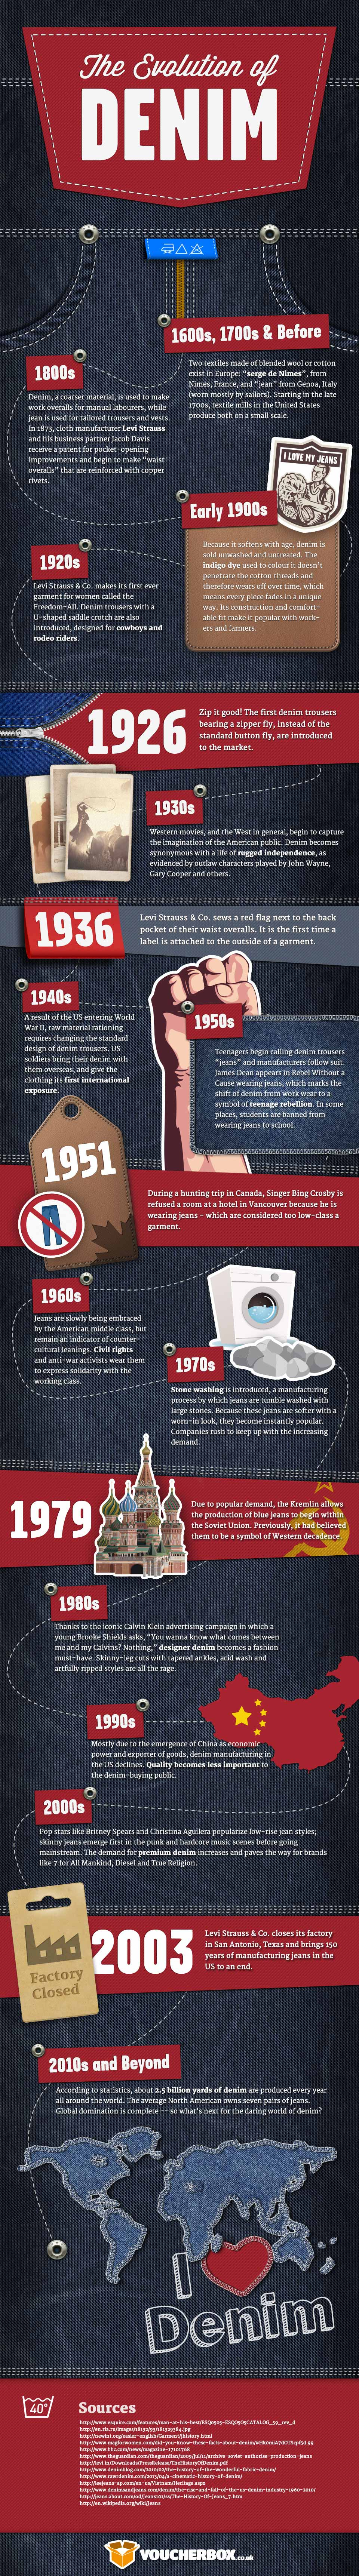 Denim history infographic